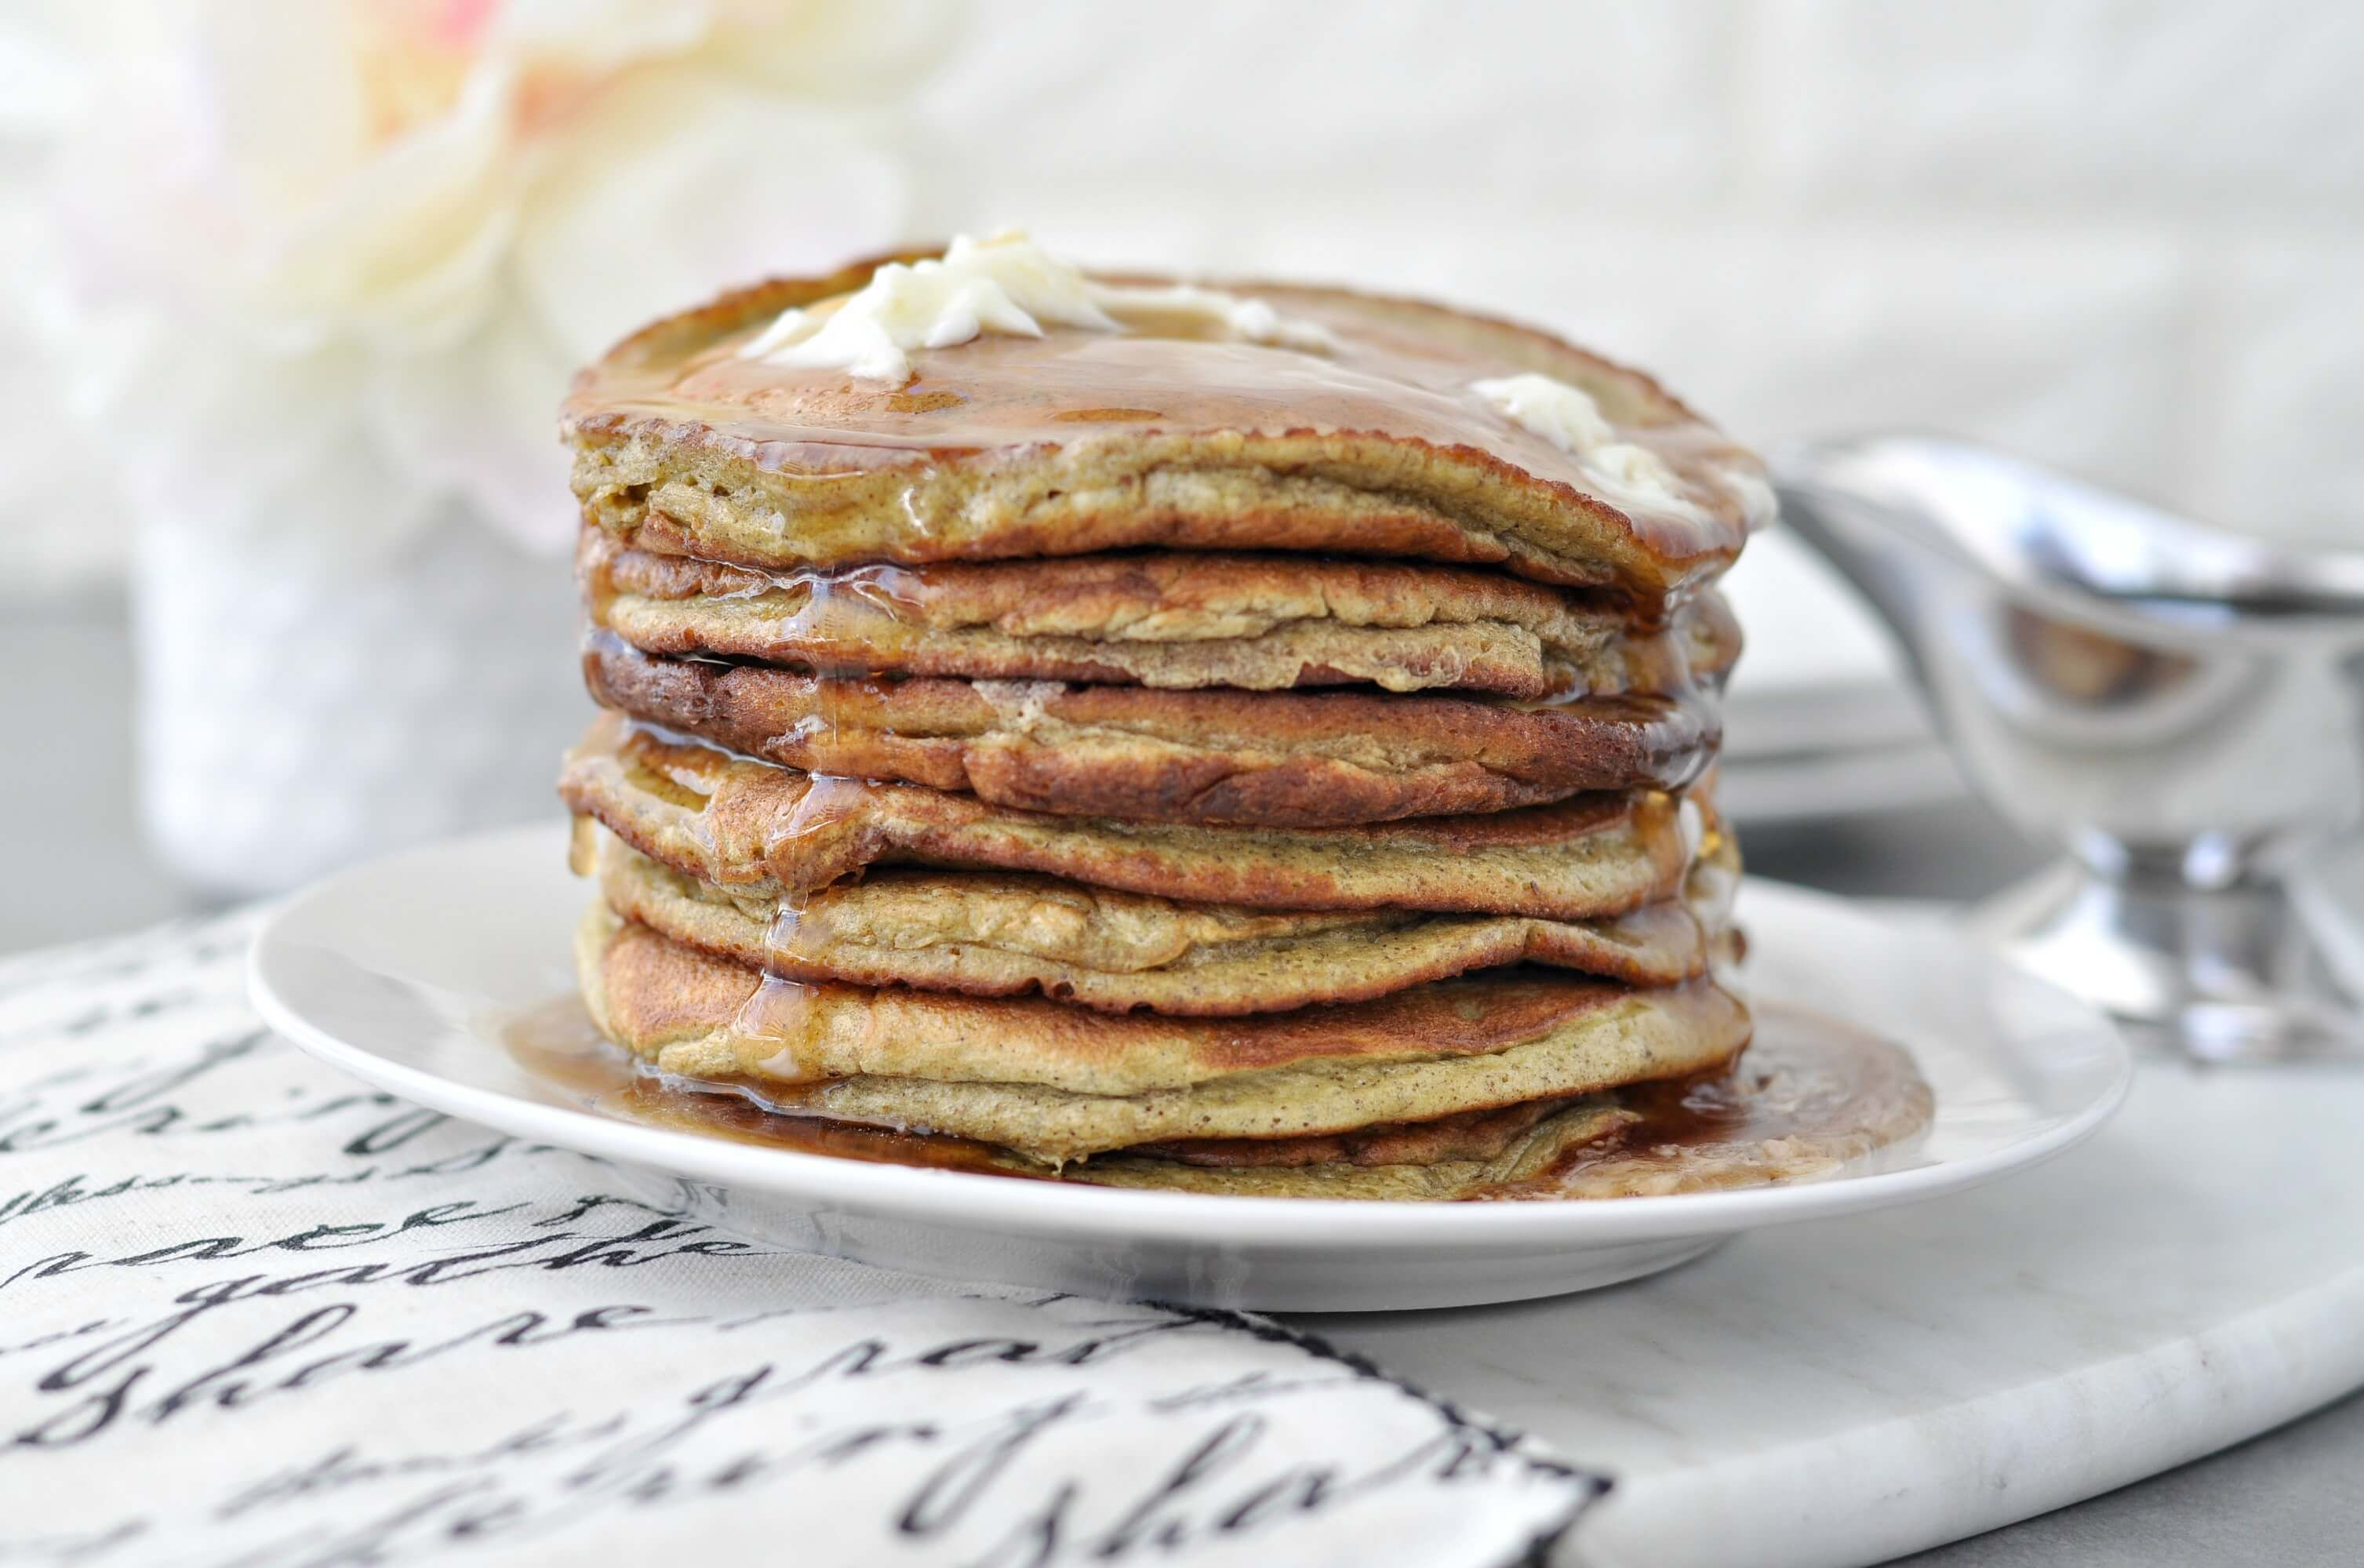 Low Carb Keto Banana Nut Protein Pancakes #proteinpowderpancakes Quick and easy low carb pancakes, made with protein powder. Blend these Low Carb Keto Banana Nut Protein Pancakes to get them nice and fluffy. #proteinpowderpancakes